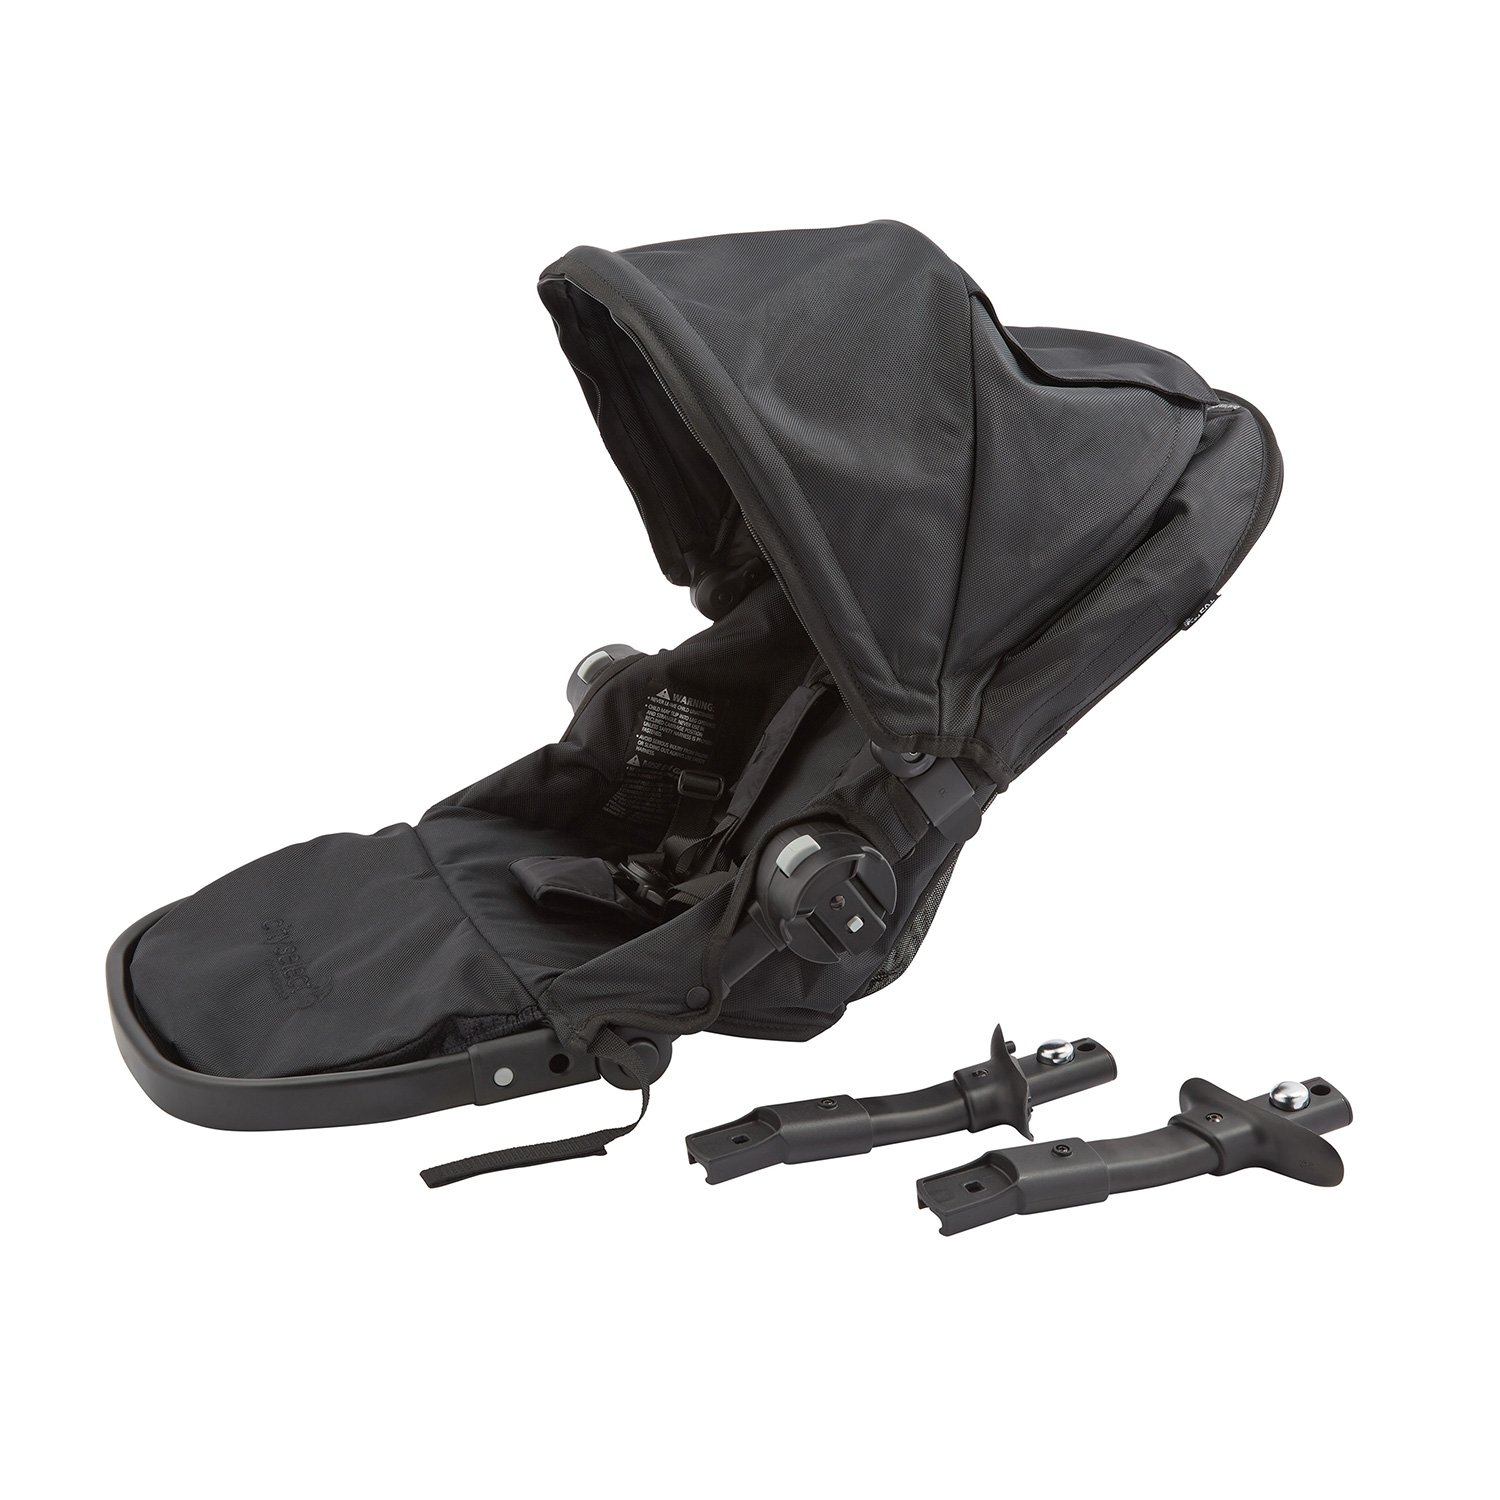 Baby Jogger City Select Second Seat Kit, Black by Baby Jogger (Image #2)